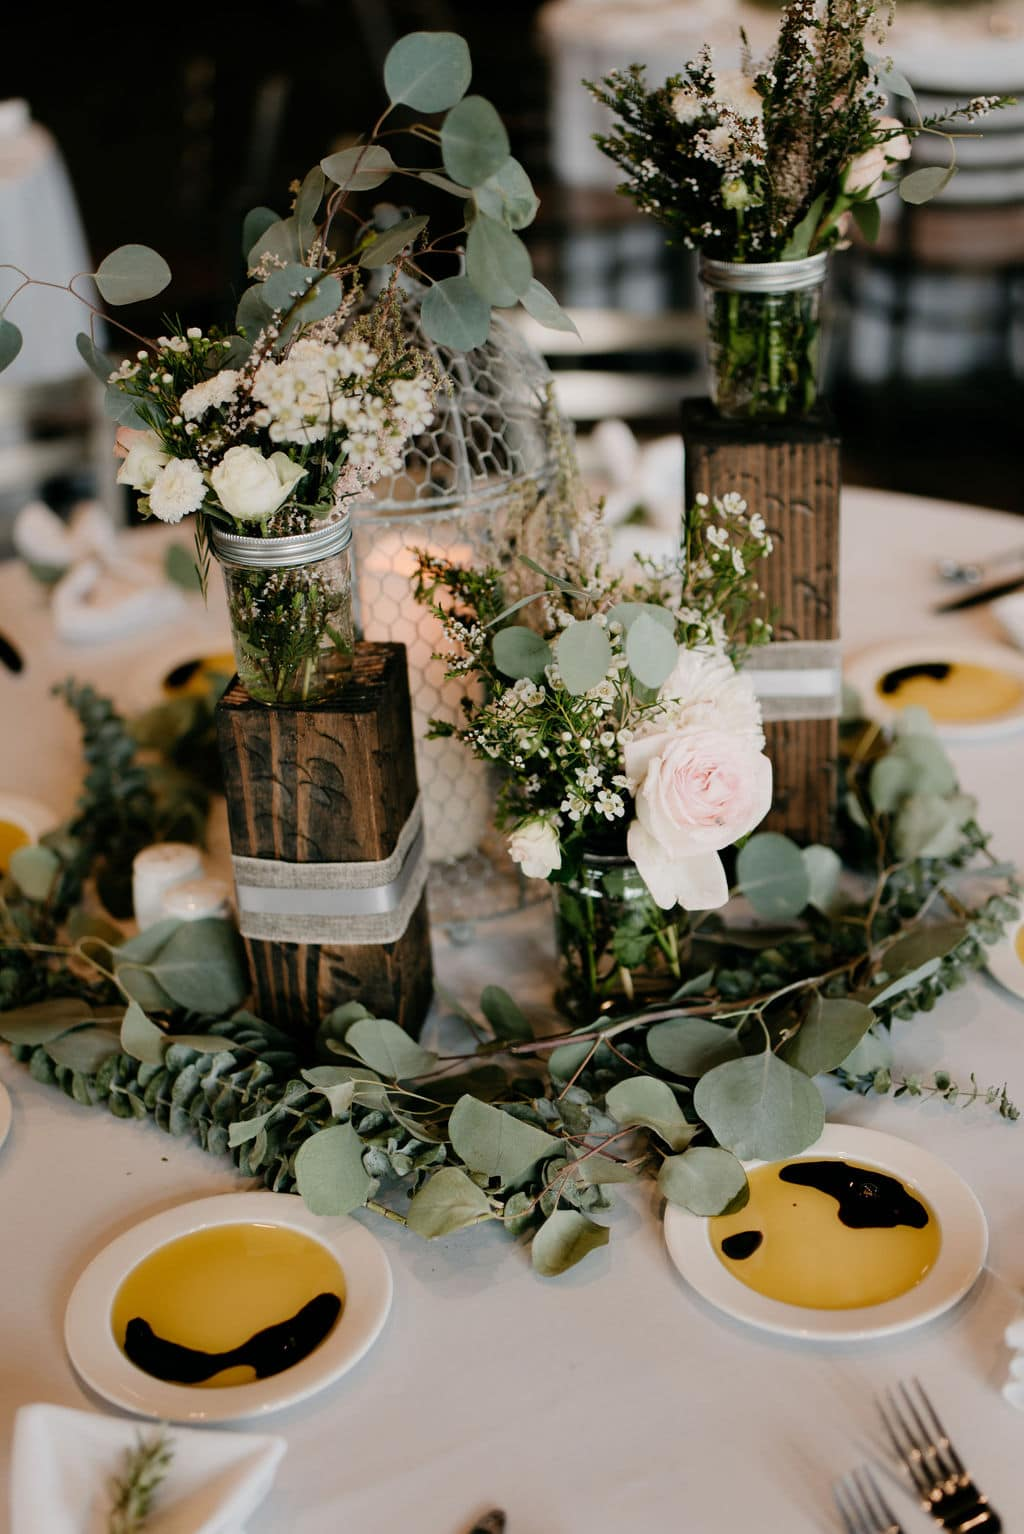 Wedding Greenery Table Decor and Floral Centerpieces